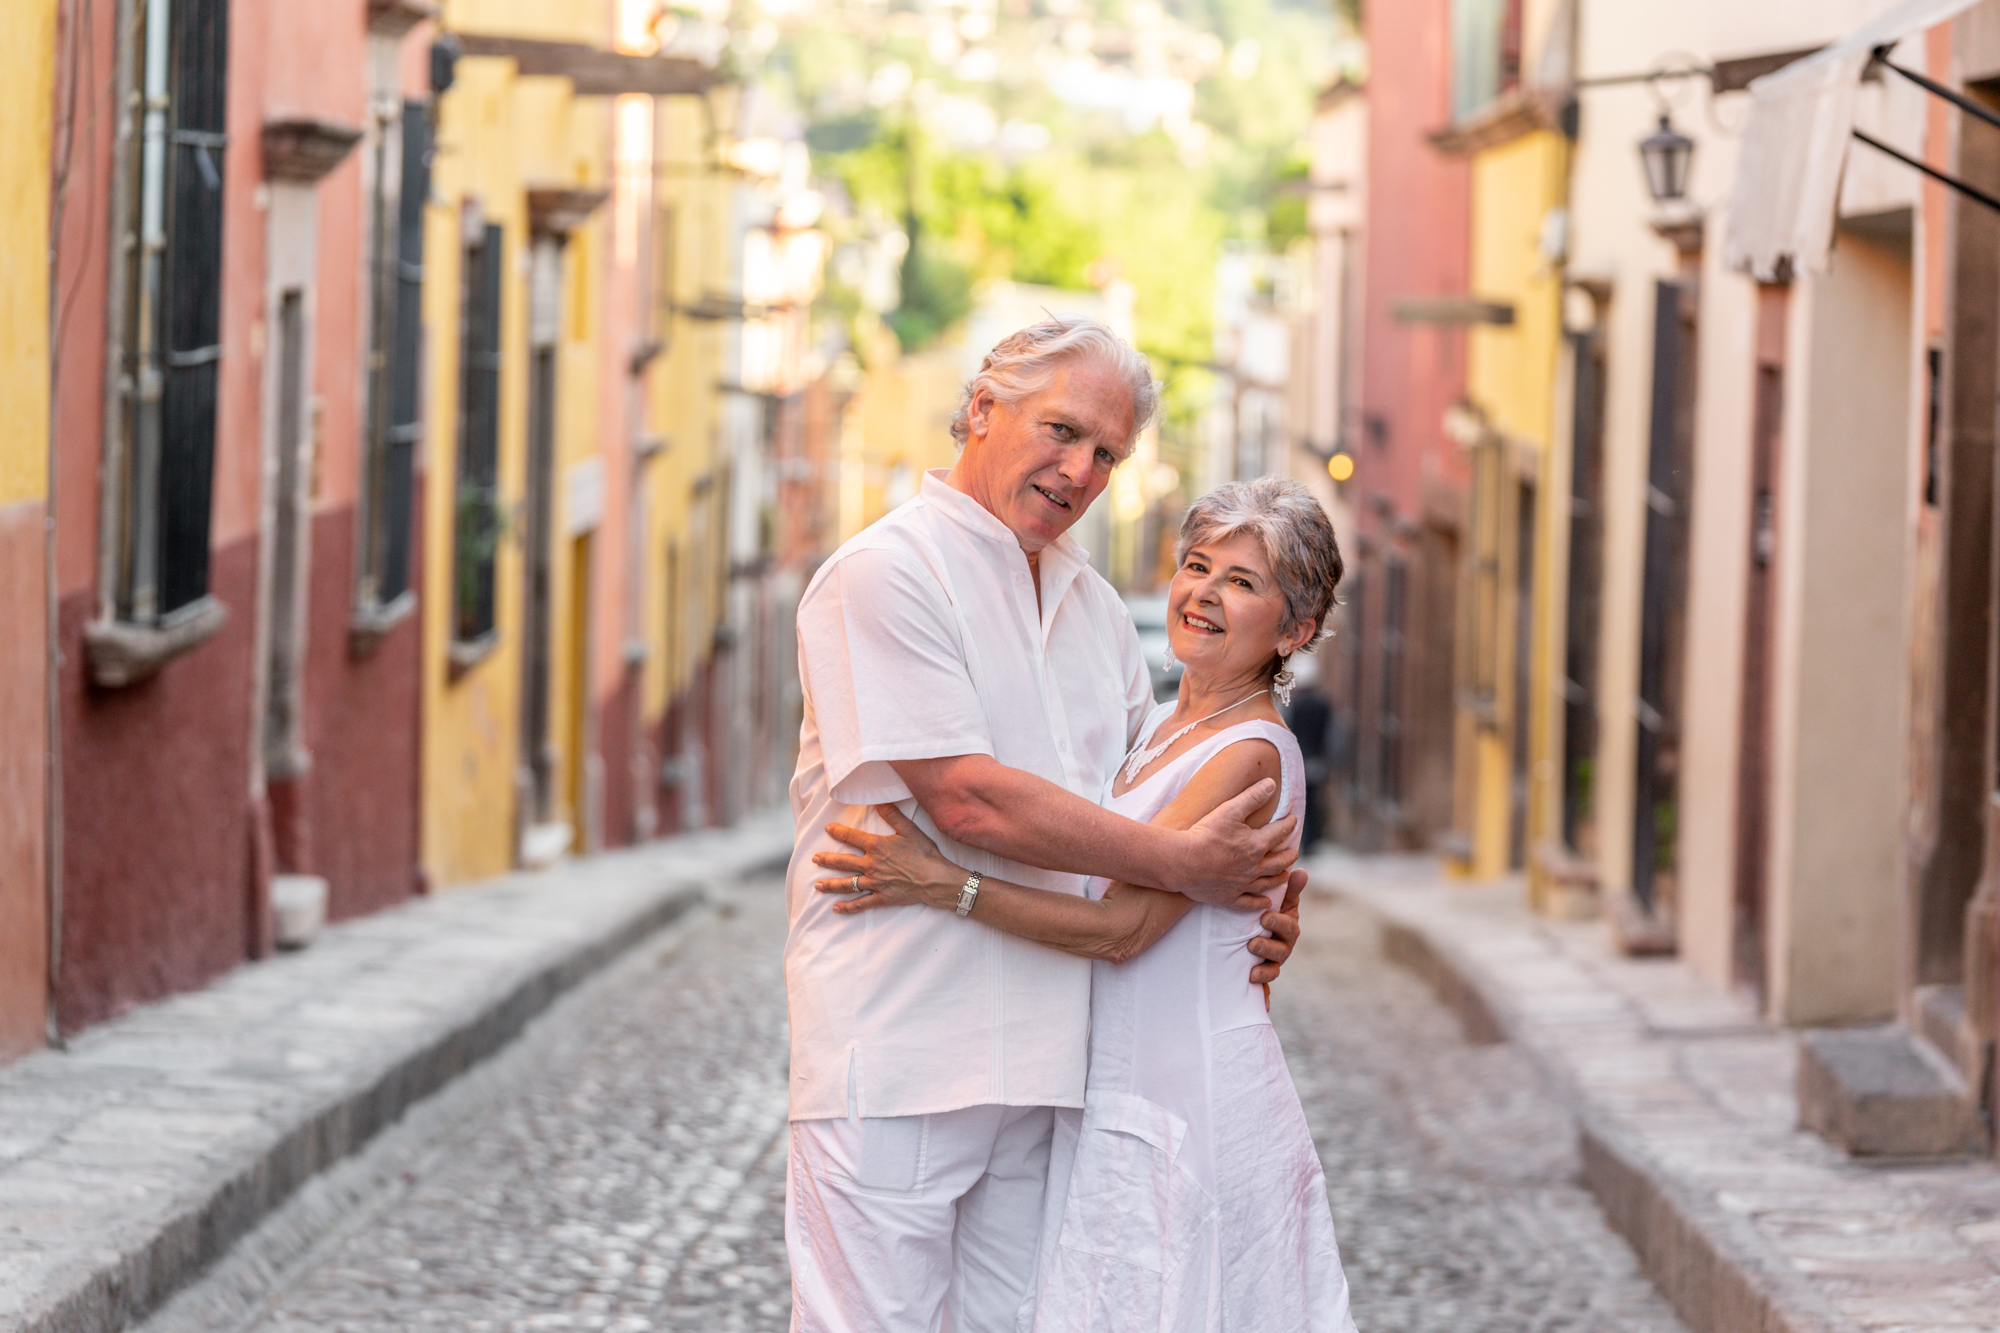 Photoshoot session in San Miguel de Allende with Suzanne and Leo-46.jpg